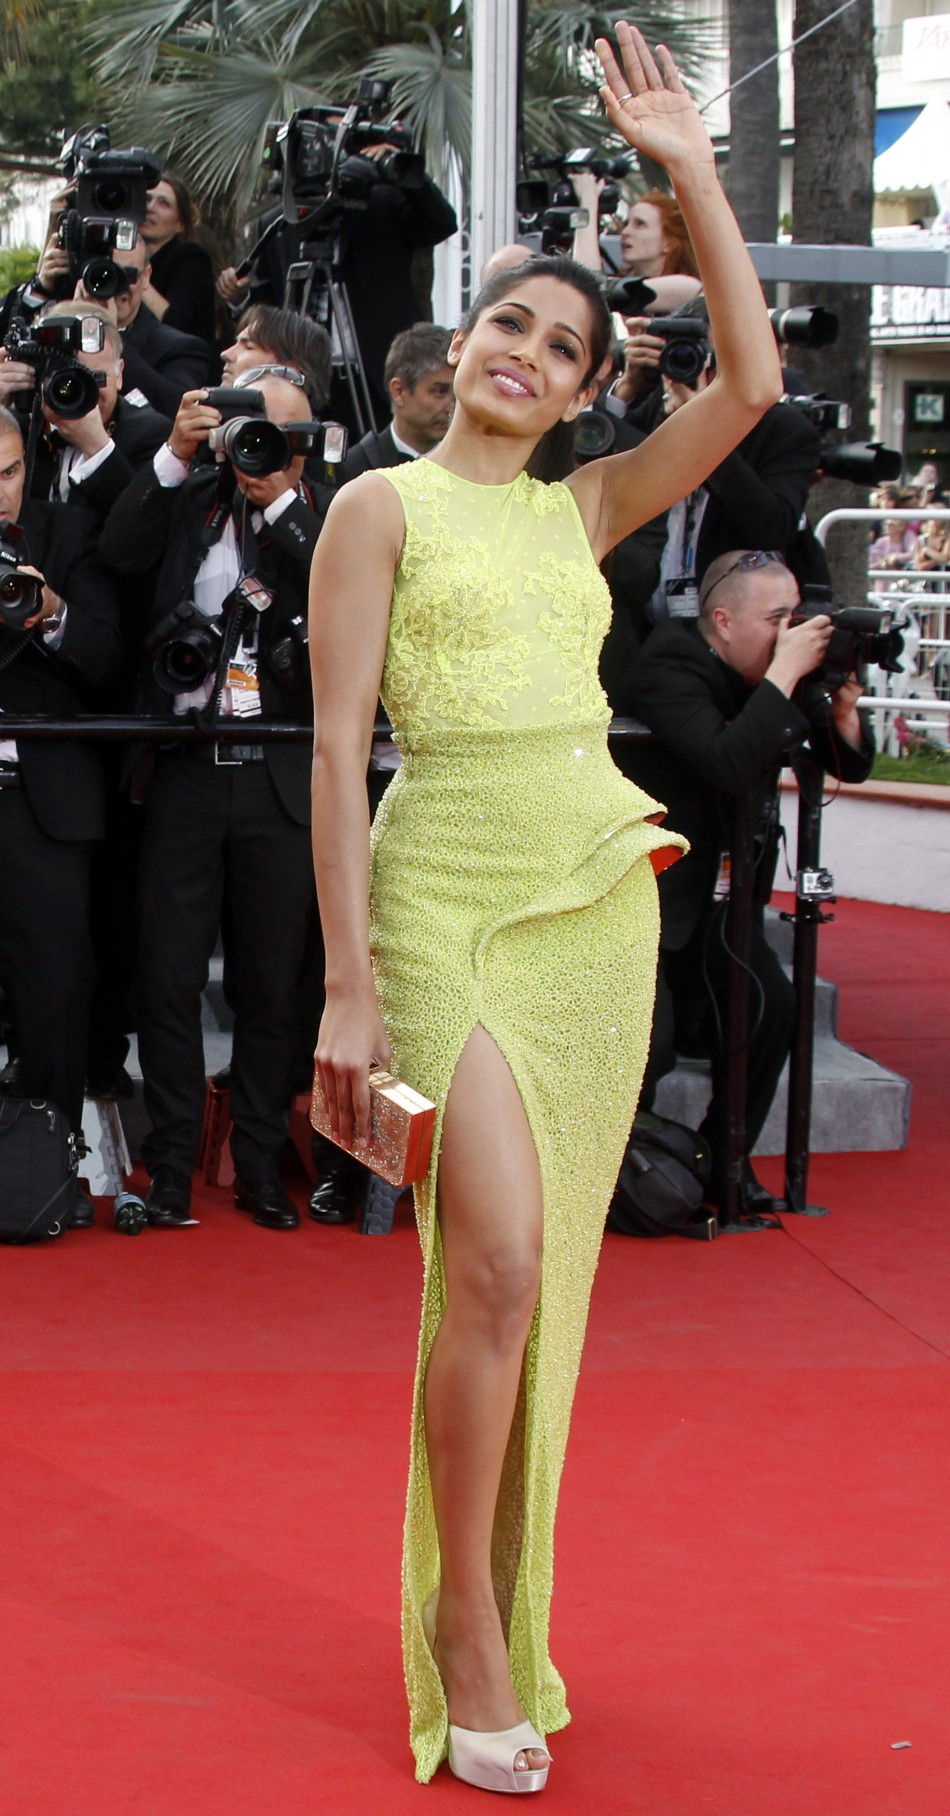 Actress Pinto arrives on the red carpet for the screeing of the film De rouille et d'os at the 65th Cannes Film Festival